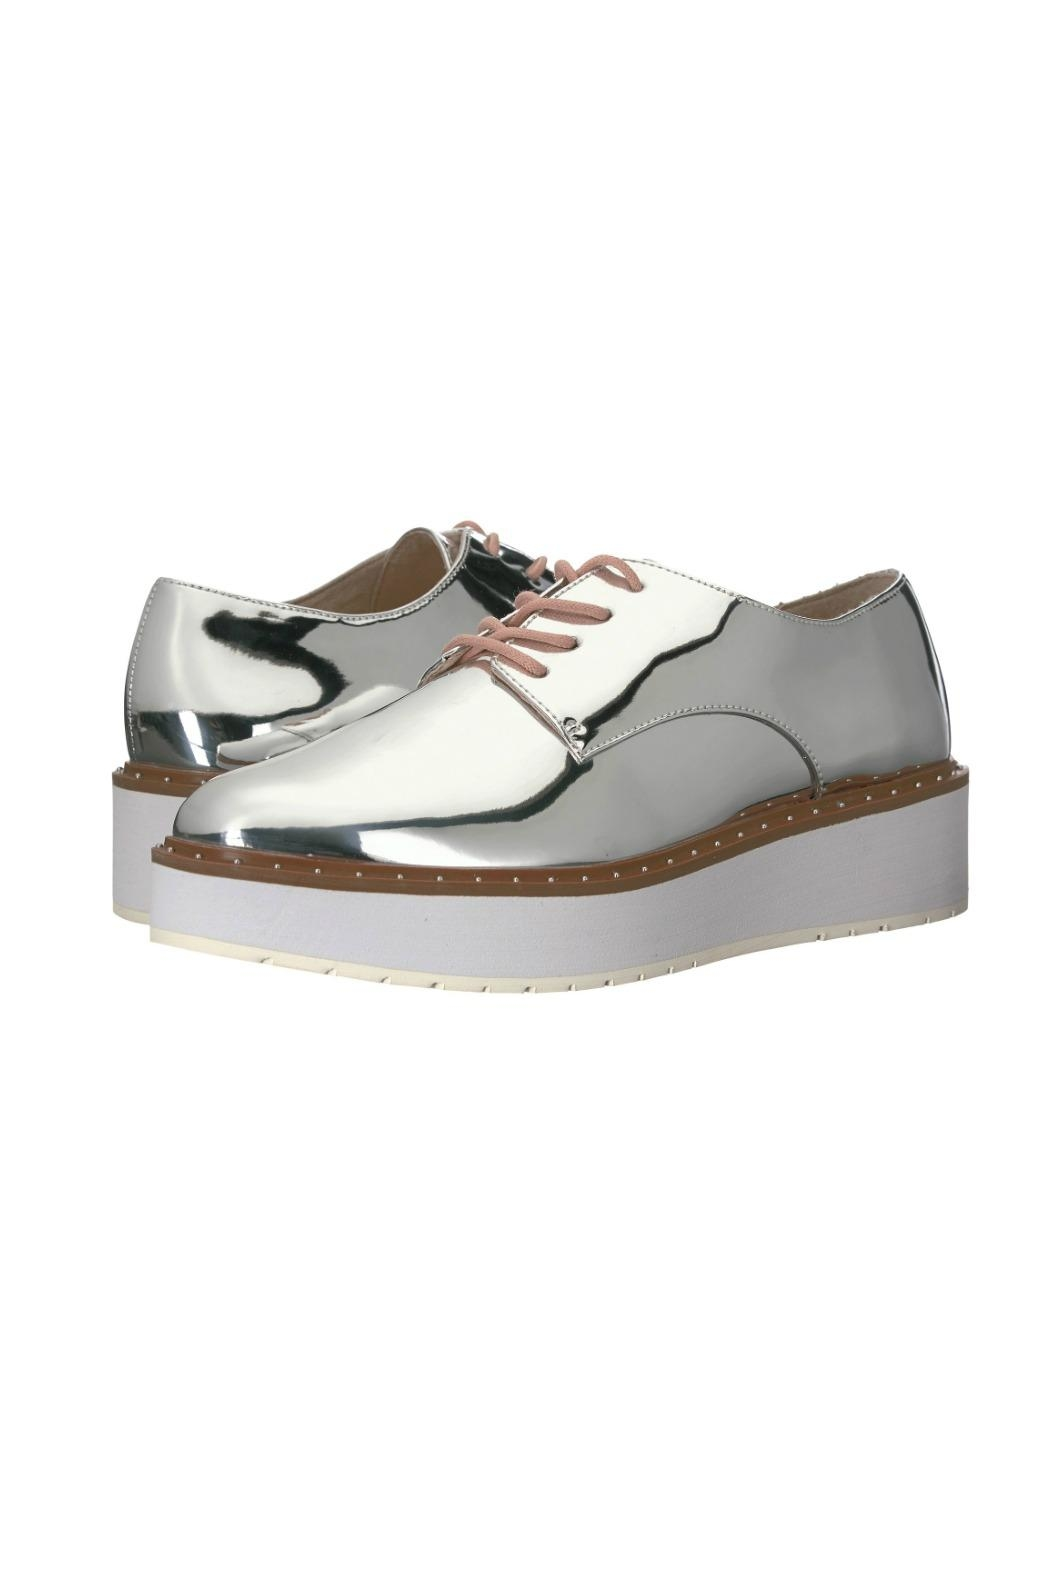 Chinese Laundry Cecilia Platform Oxford Shoes - Front Full Image